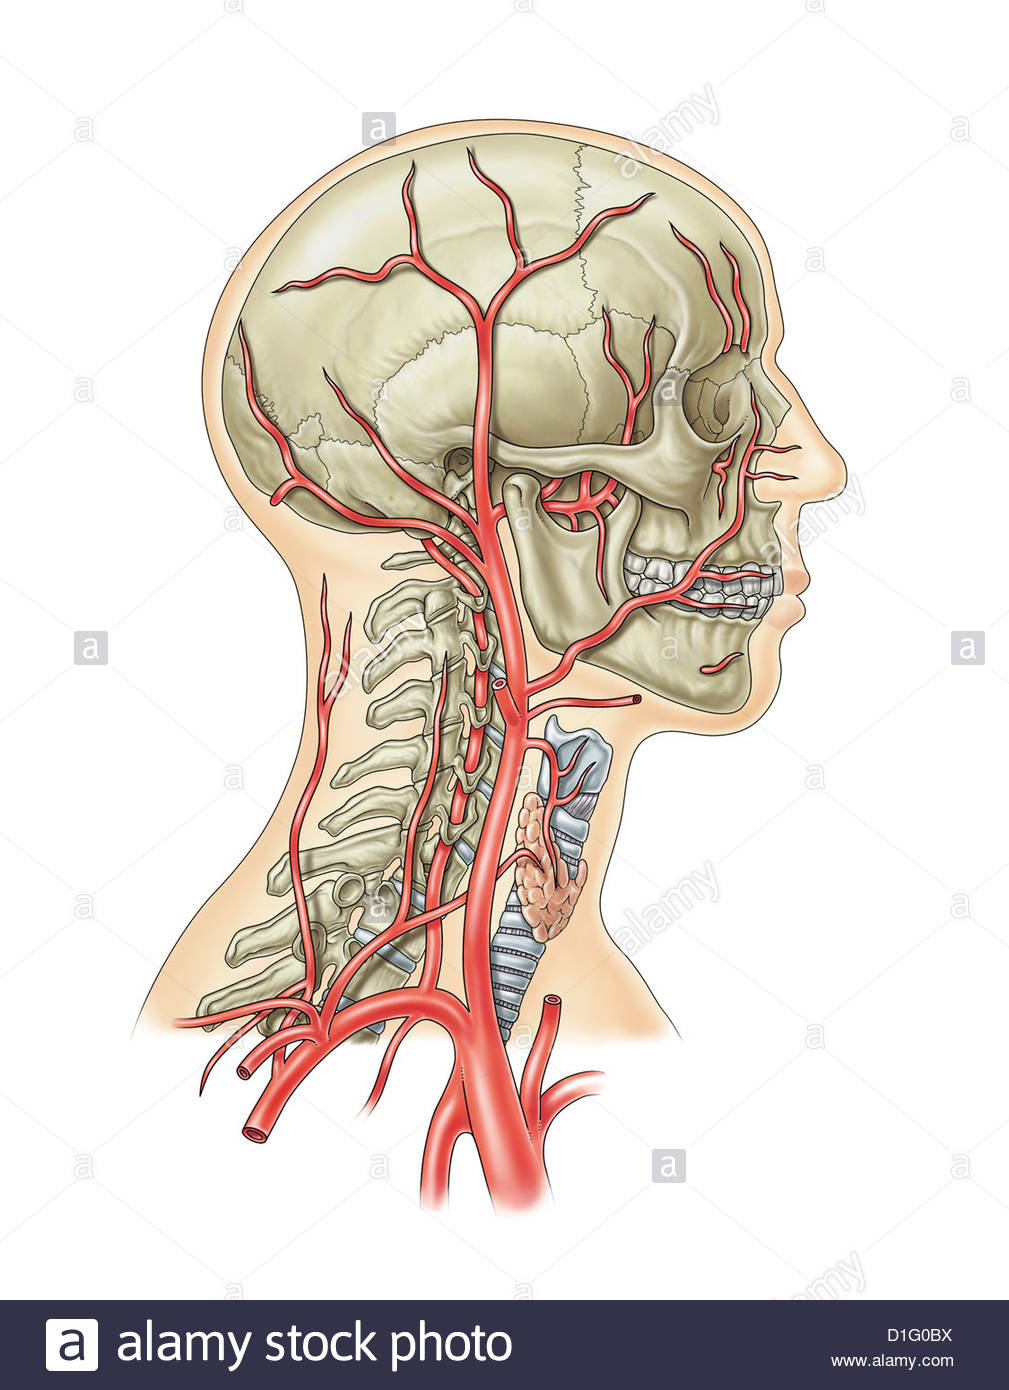 ILLUSTRATION - ARTERIAL BLOOD SUPPLY HEAD AND NECK Stock Photo